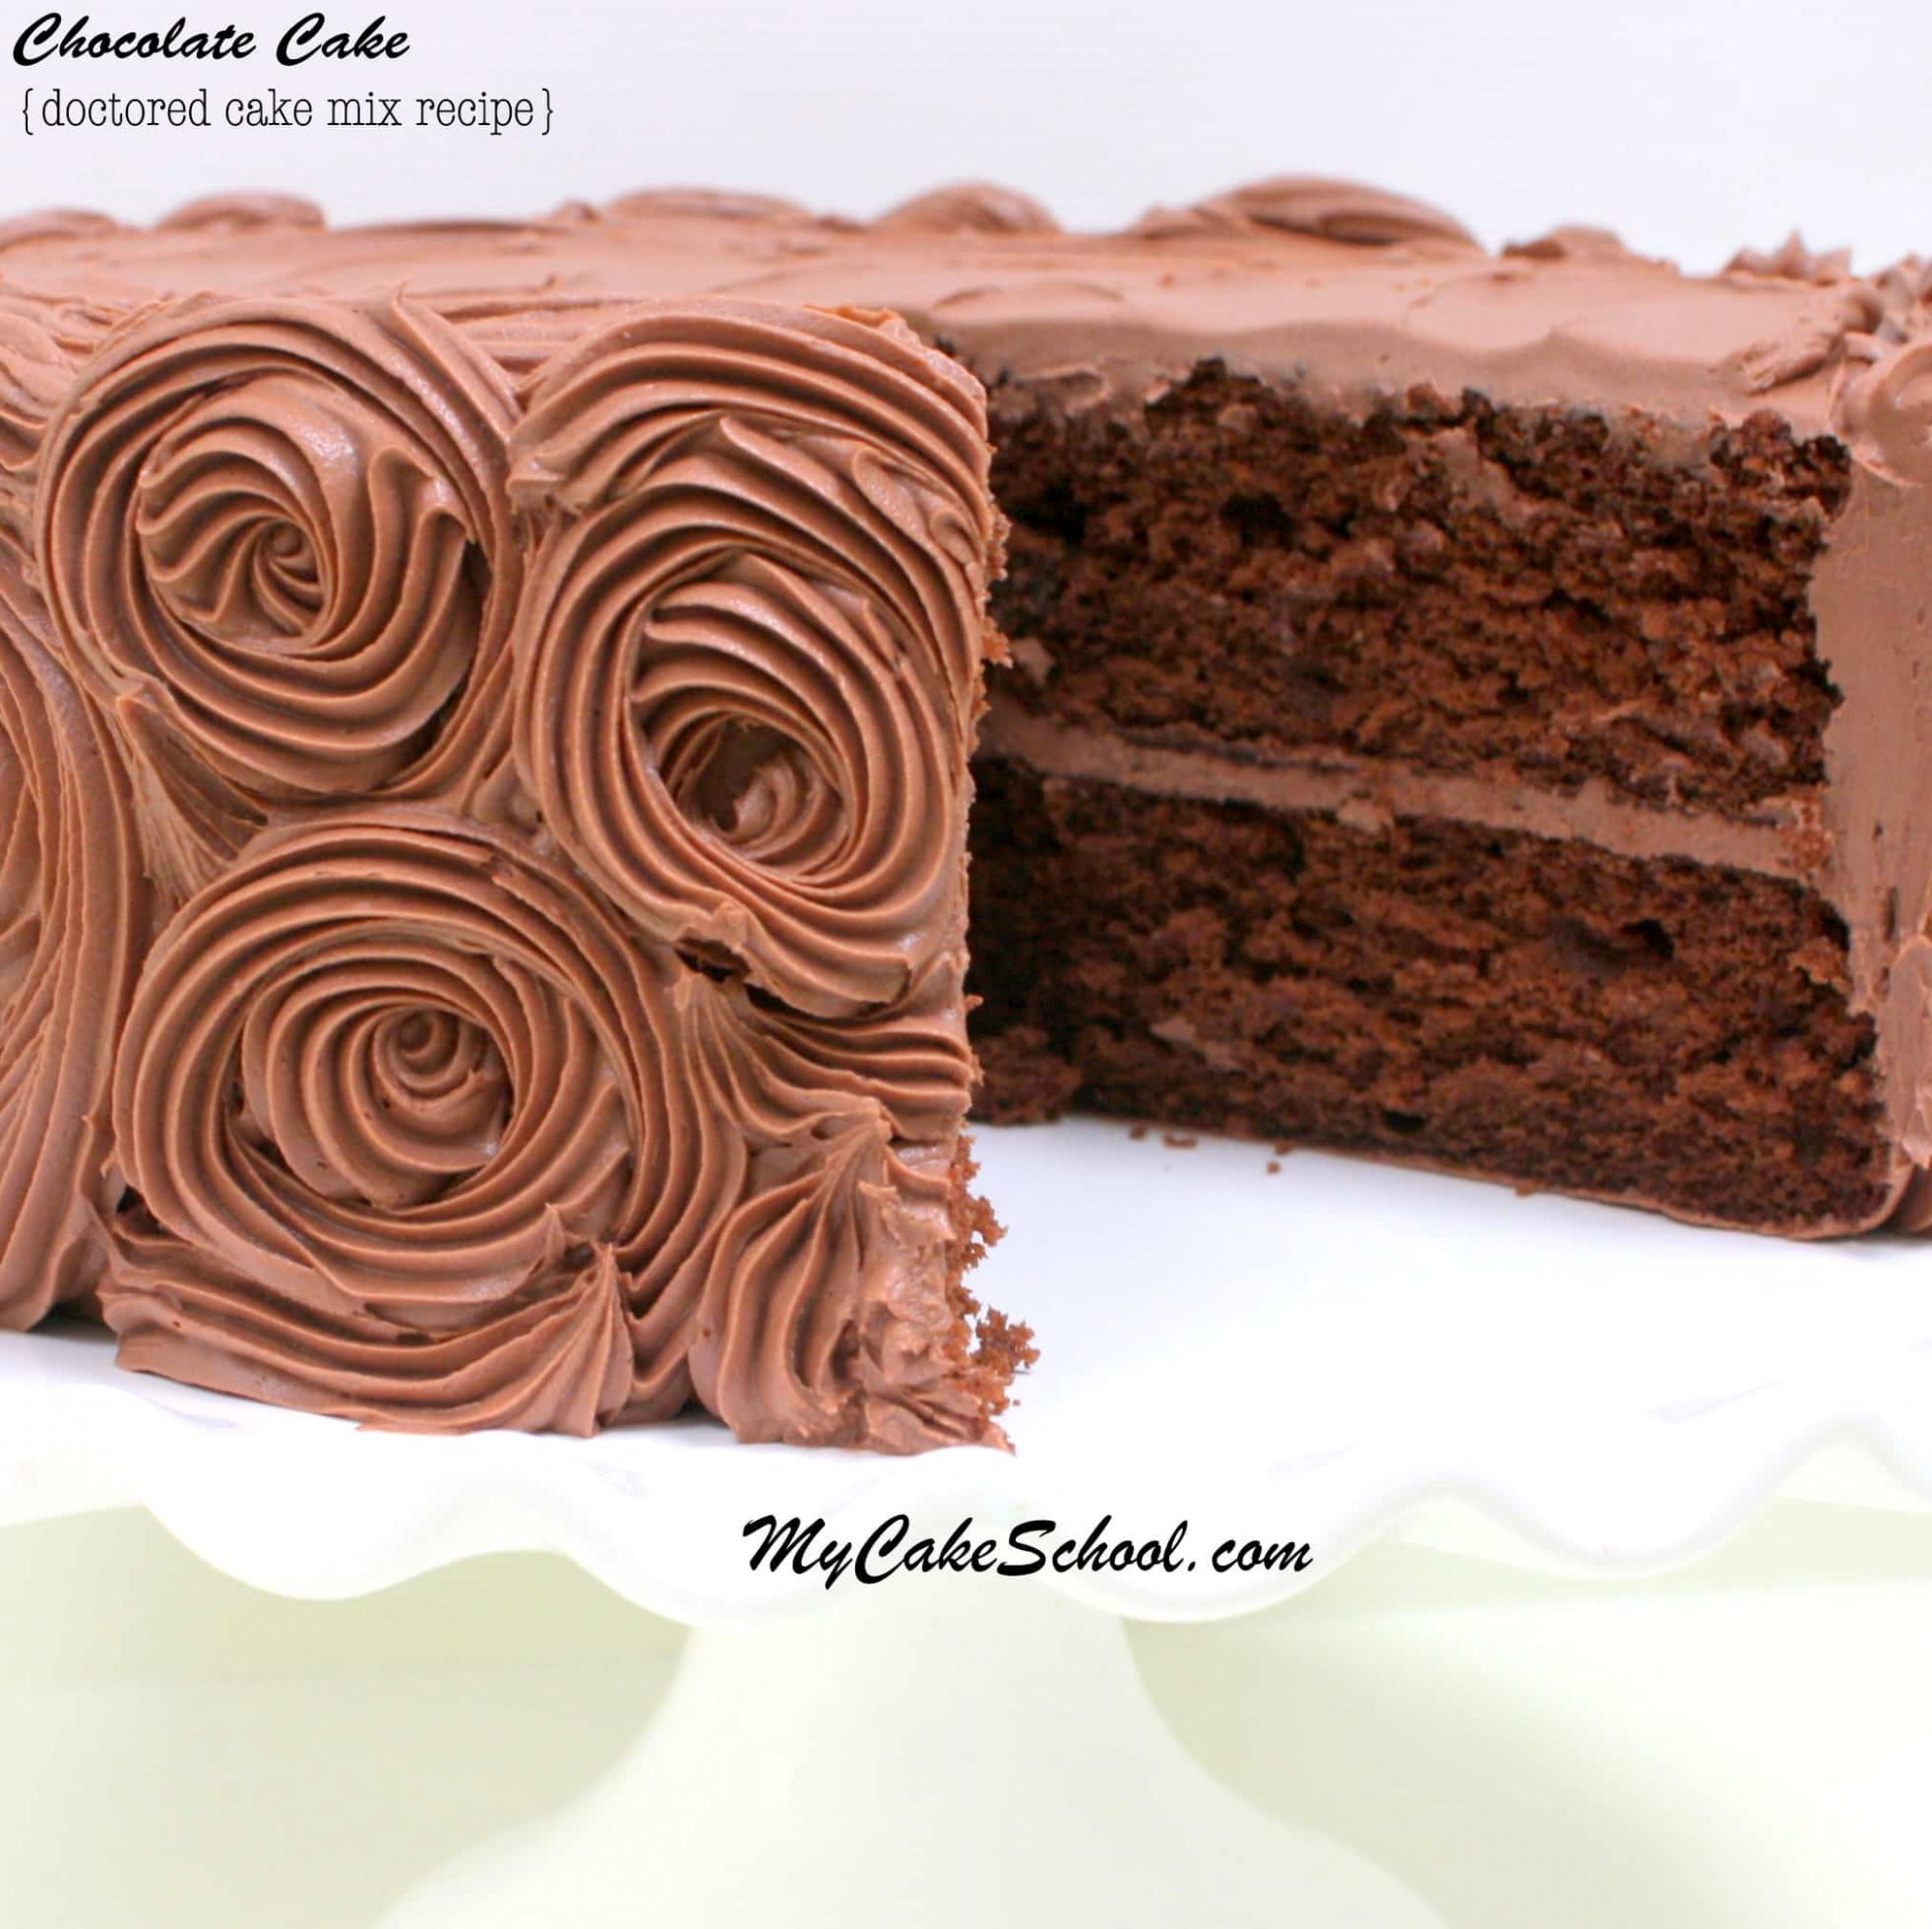 Chocolate Cake~A Doctored Mix Recipe | My Cake School - Recipes Using Chocolate Cake Mix